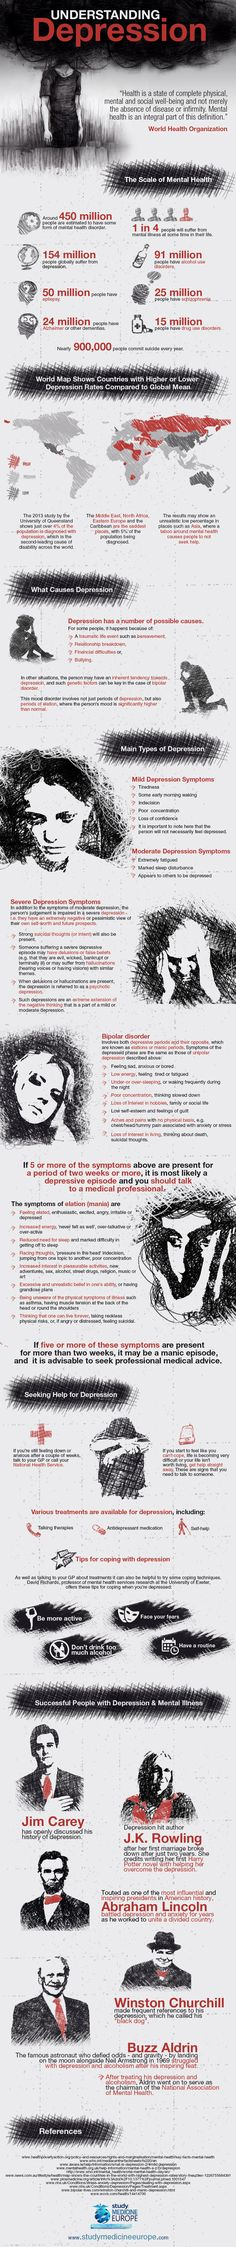 An Infographic to Help You Understand Depression - Whether induced by outside factors or an inherent tendency towards depression or bipolar disorder, seek help if symptoms are present for two or more weeks. (View only) Depression and Bipolar Support Allia Mental Disorders, Bipolar Disorder, Mental Health Issues, Mental Health Awareness, Stress Management, Dealing With Depression, Depression Hurts, Depression Symptoms, Bipolar Symptoms